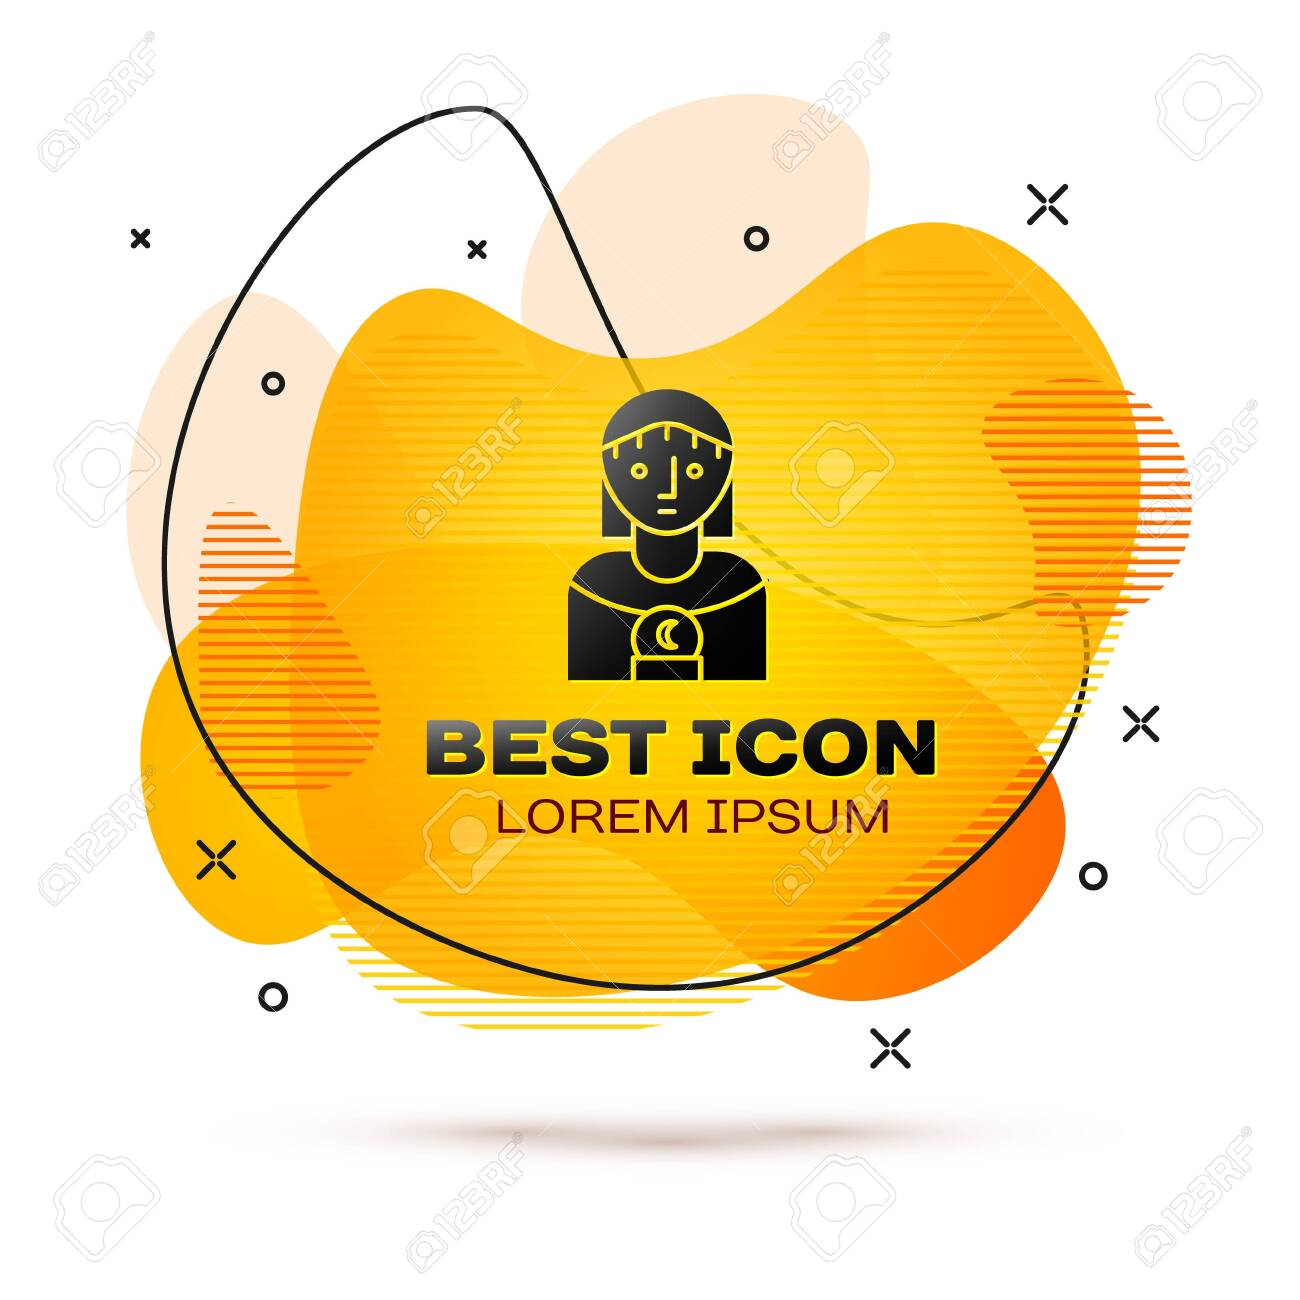 Black Astrology Woman Icon Isolated On White Background Abstract Royalty Free Cliparts Vectors And Stock Illustration Image 138572838